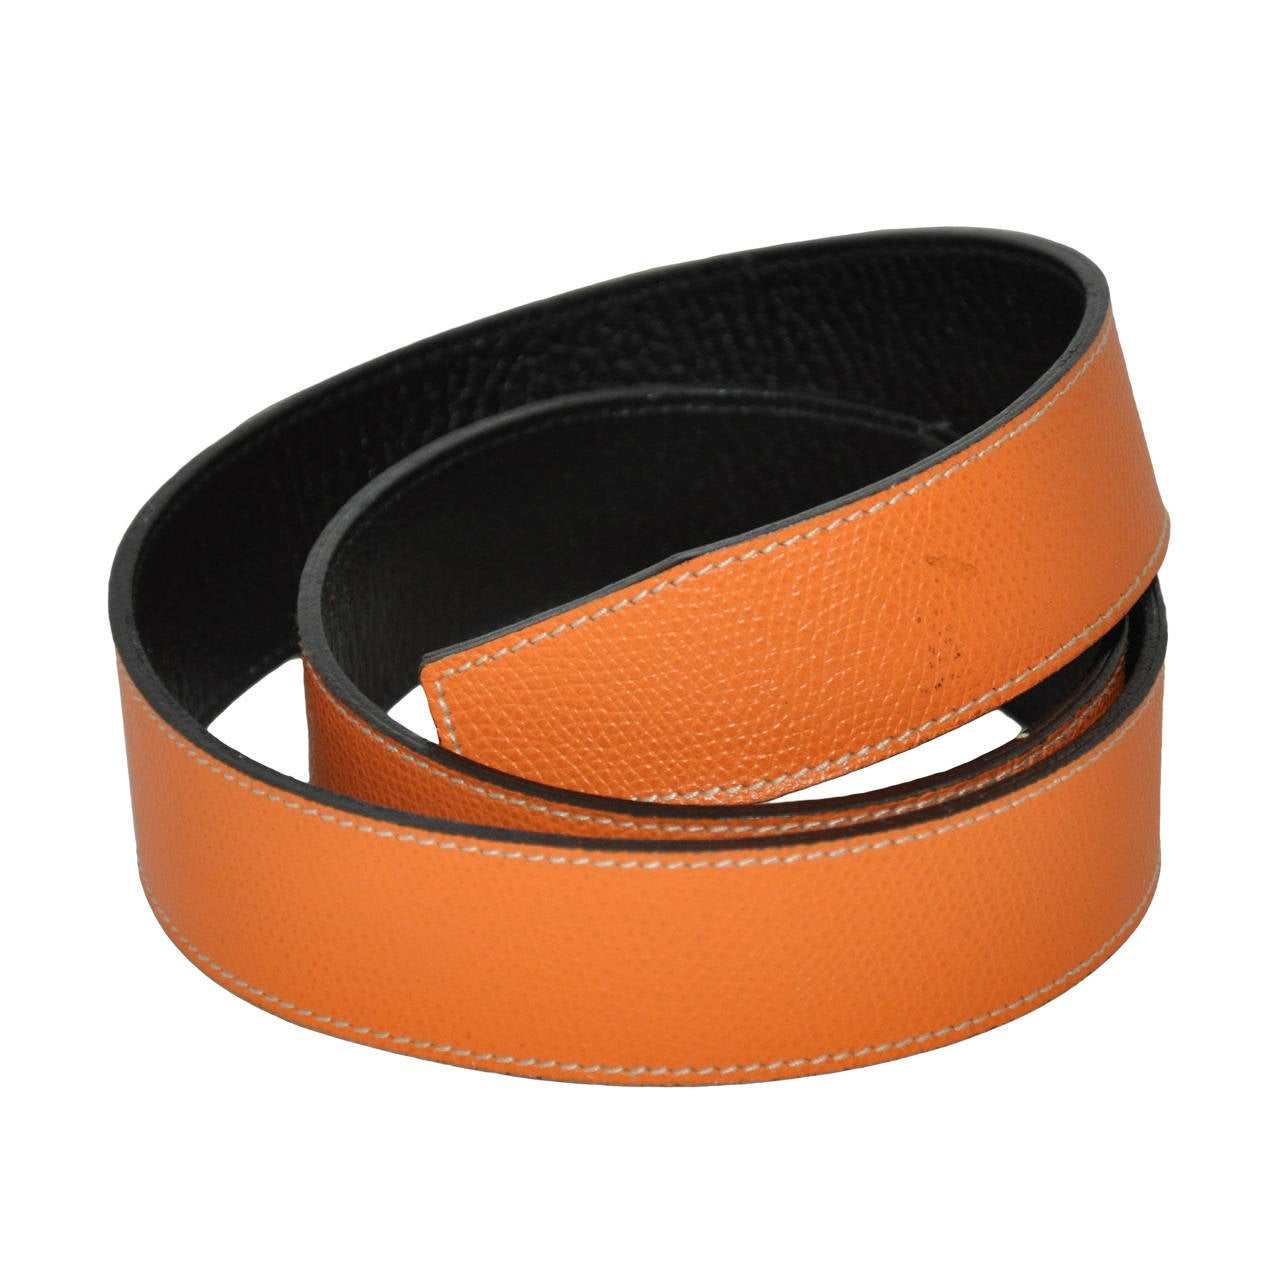 Hermes Textured Tangerine with Black Calfskin Belt for Inter-Changable Buckle